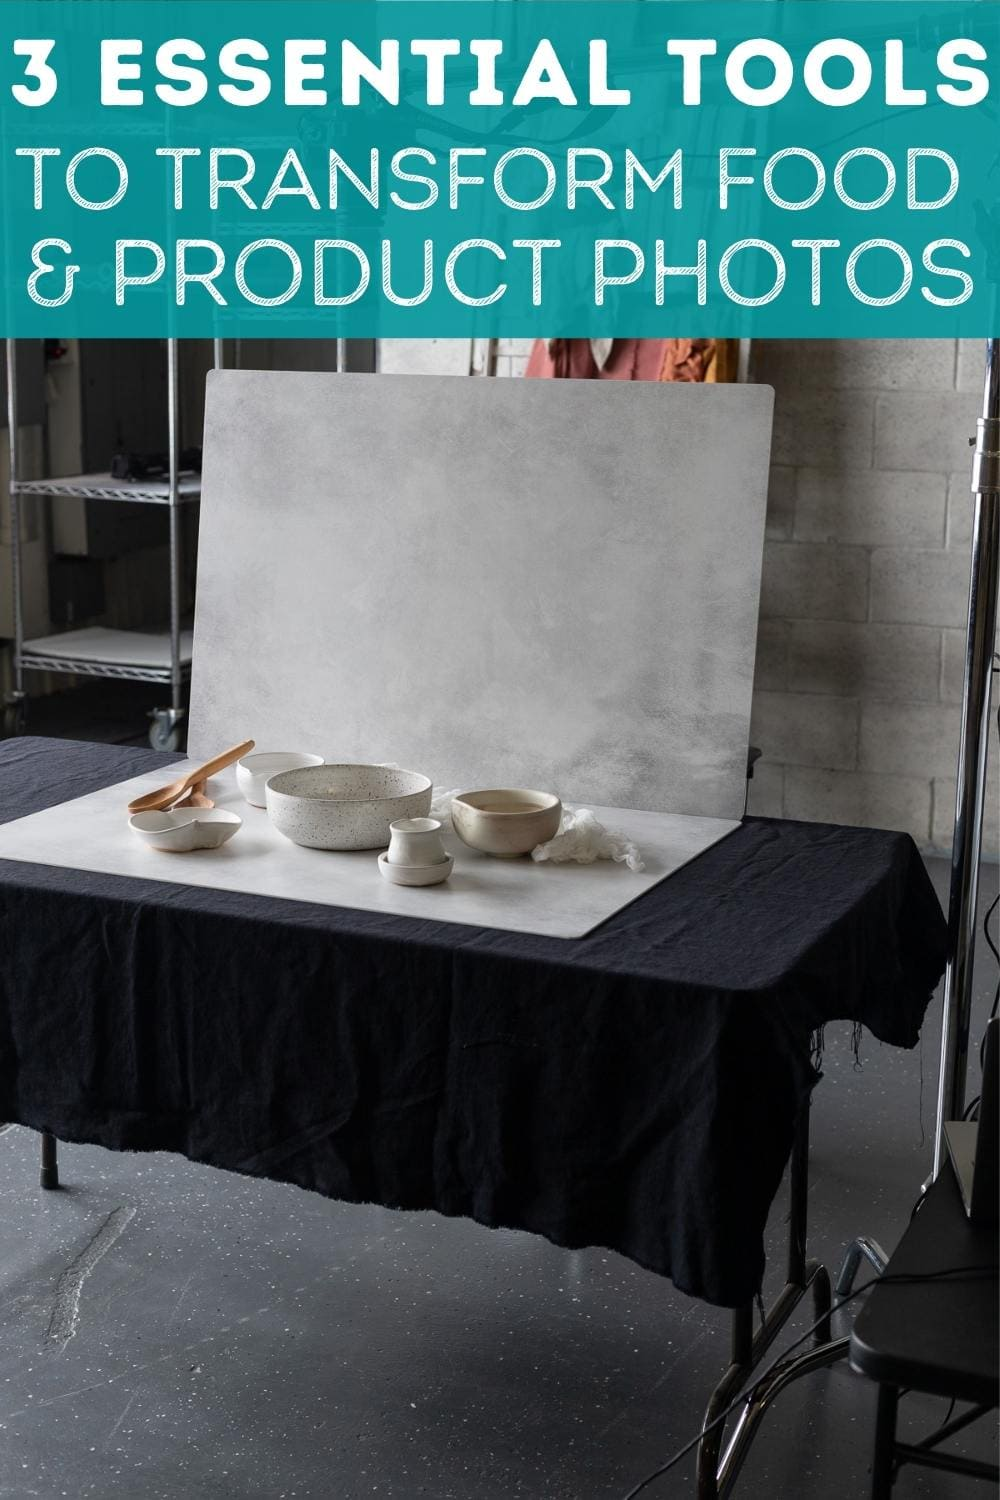 Transform your food and product photos with these 3 essential tools! via @bessiebakes